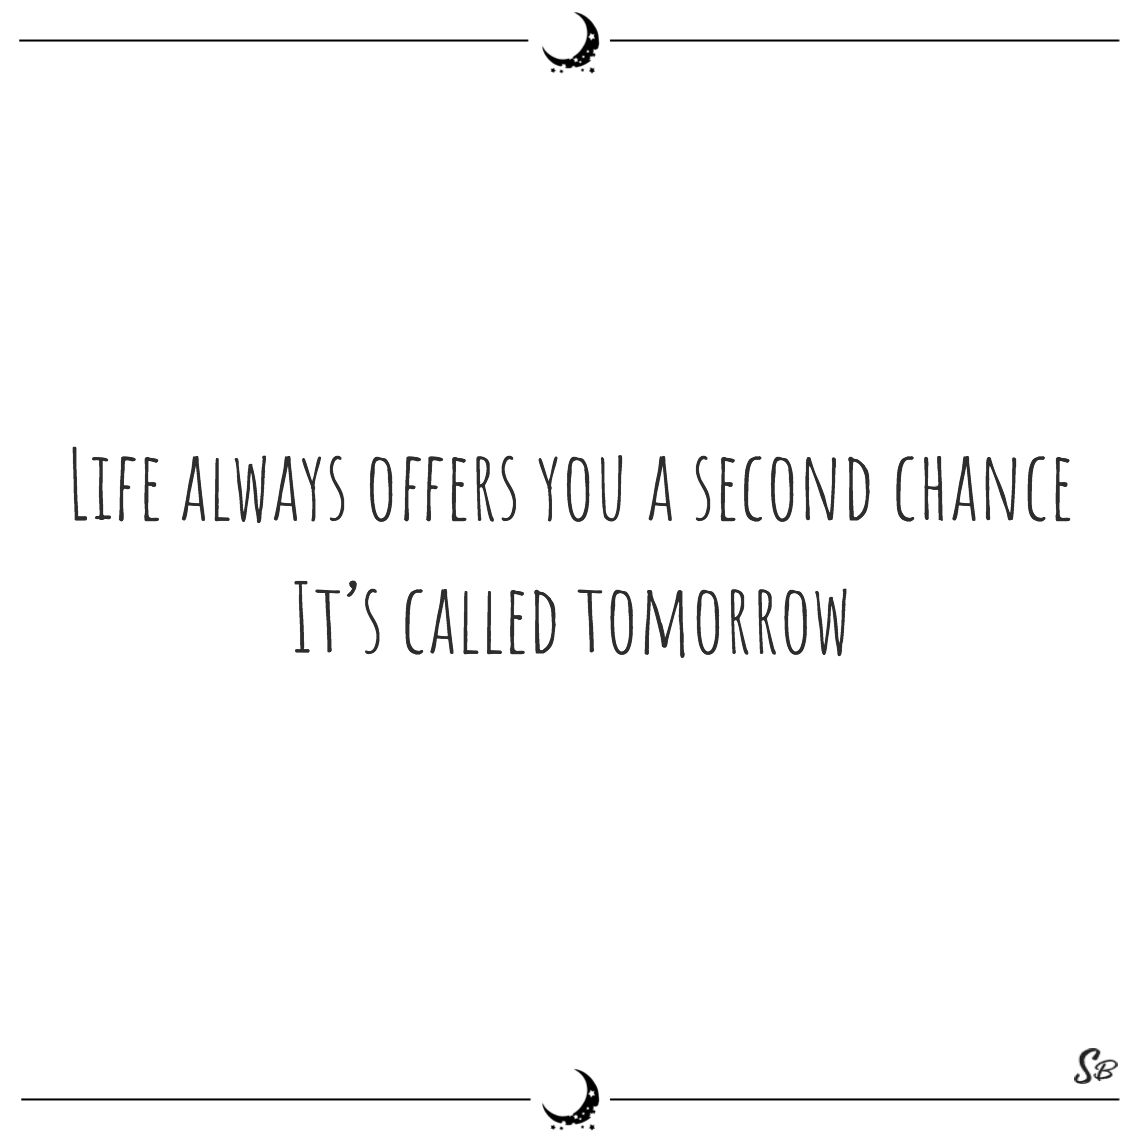 Life always offers you a second chance it's called tomorrow dylan thomas